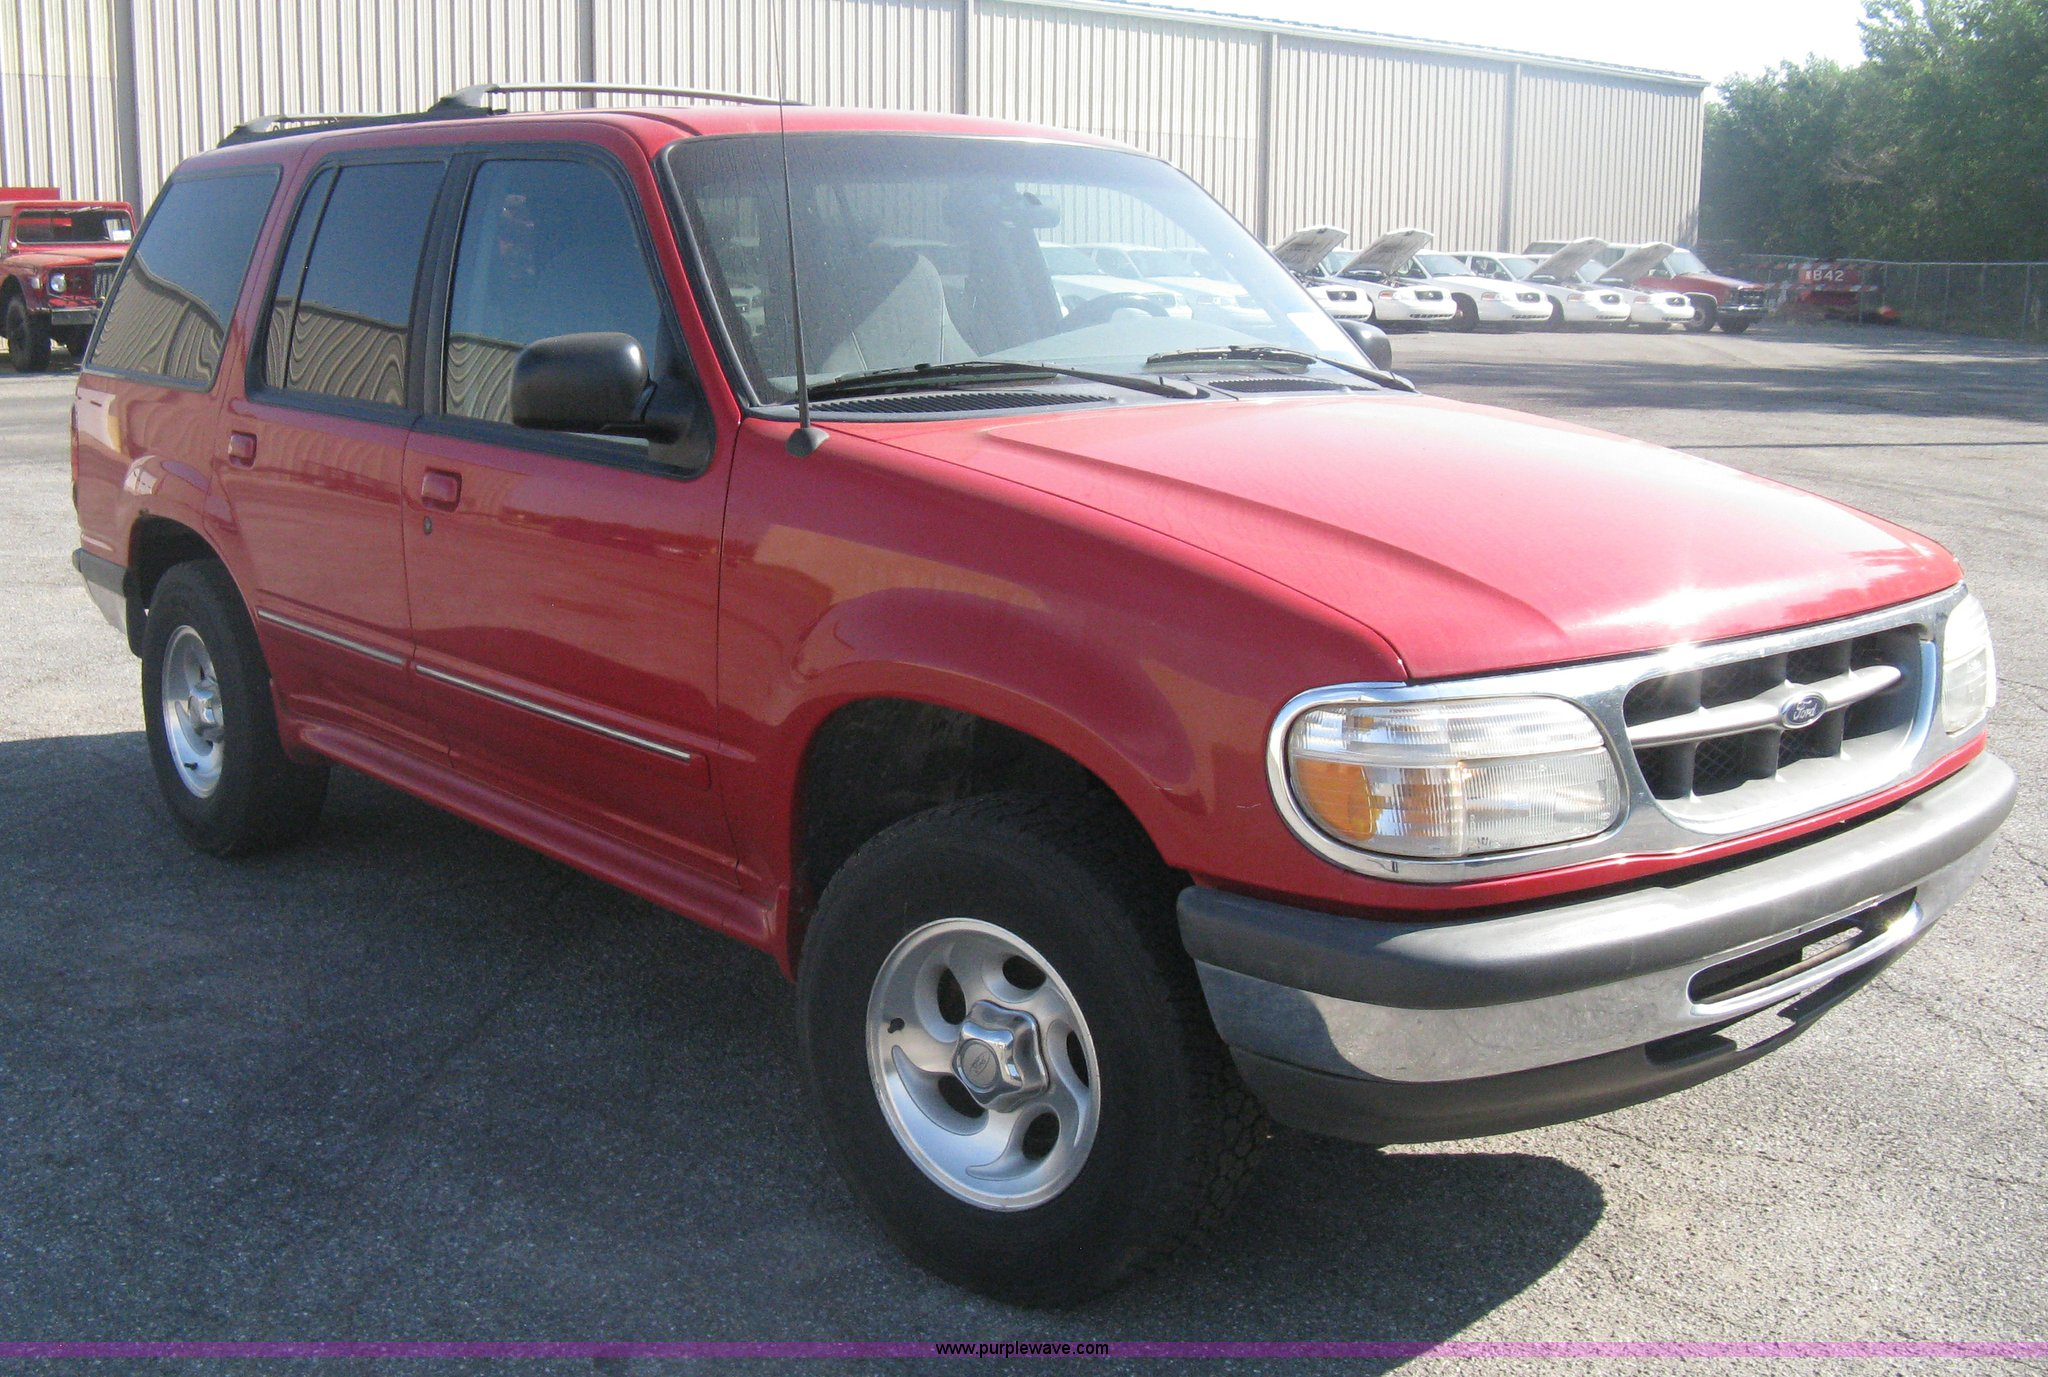 H6432 image for item h6432 1998 ford explorer